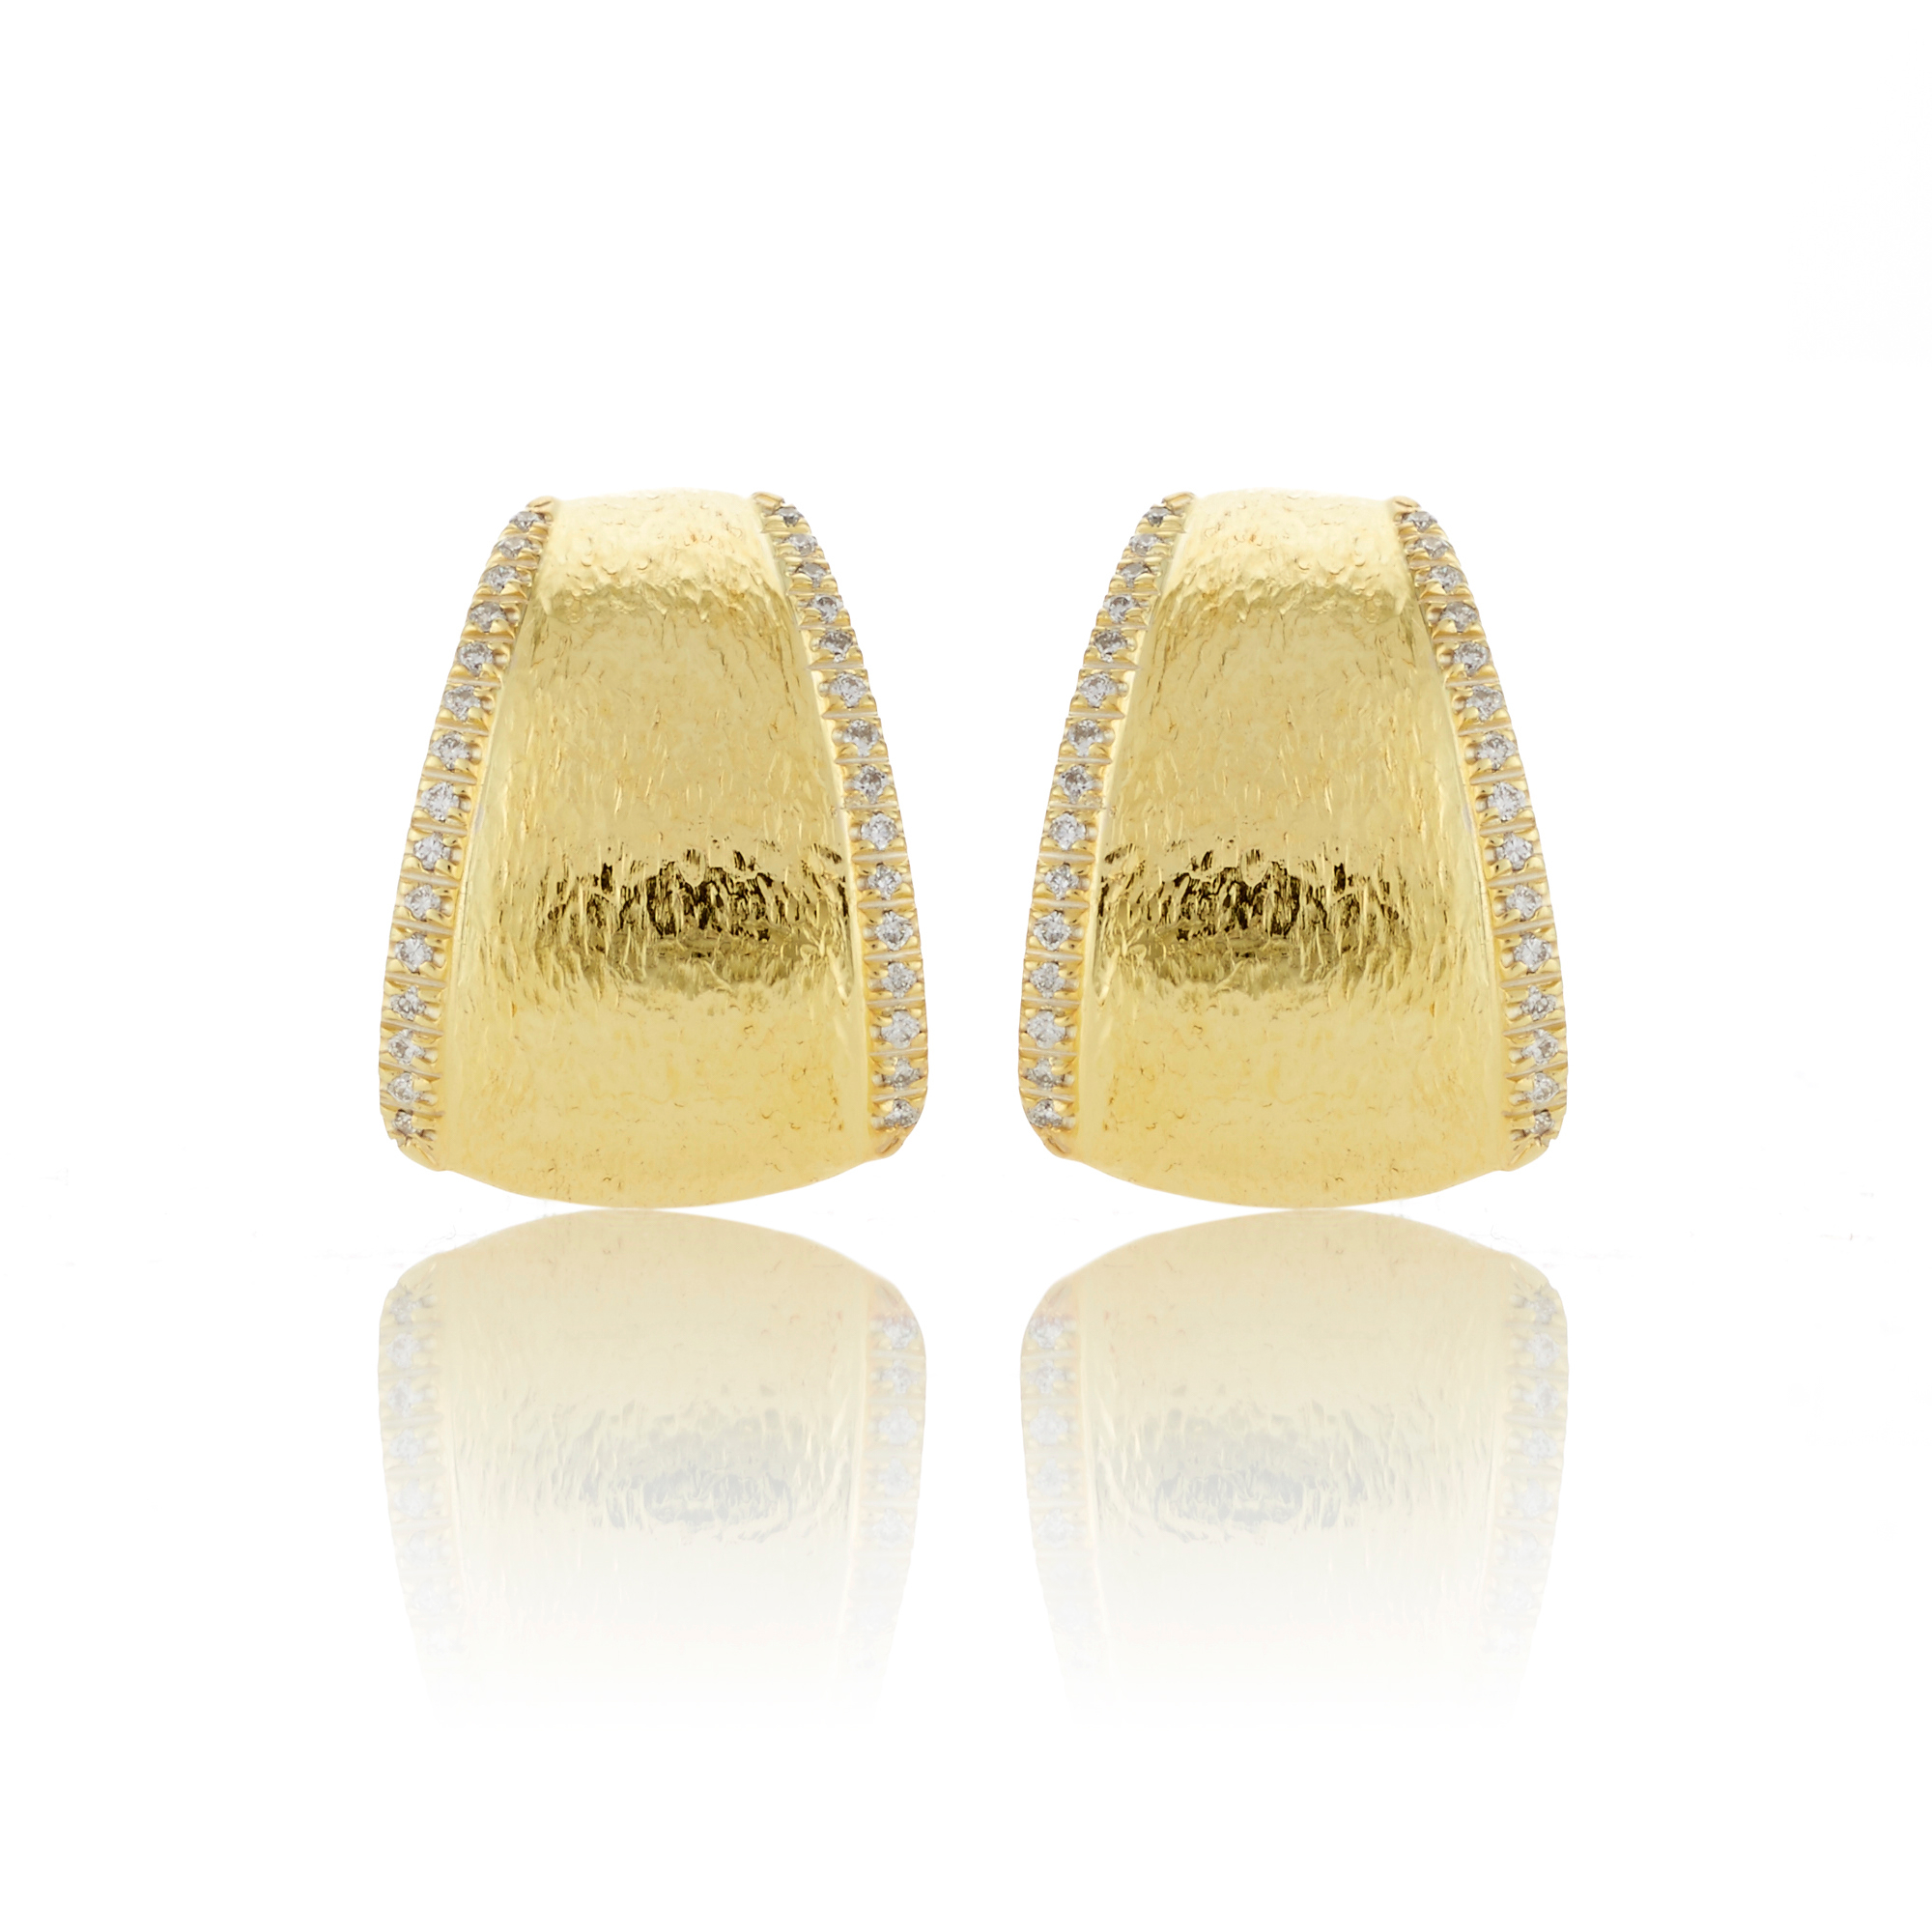 Hammered Gold and Diamond Cuff Earrings